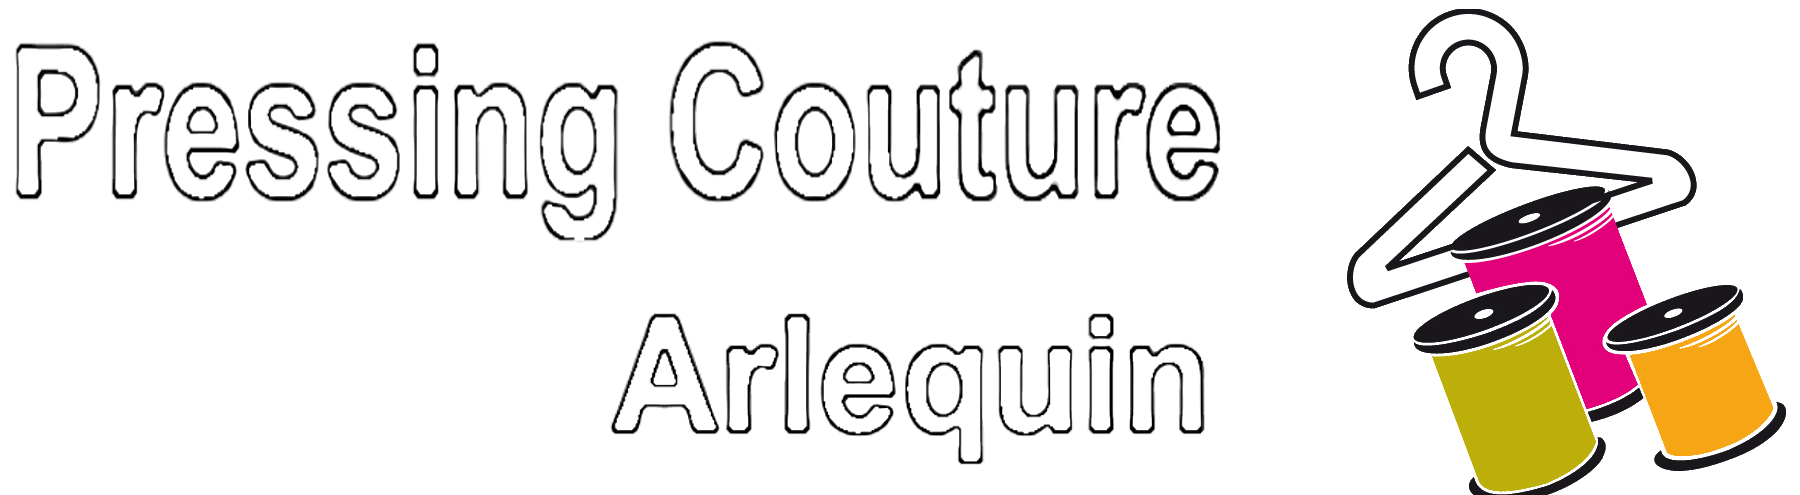 Arlequin pressing couture